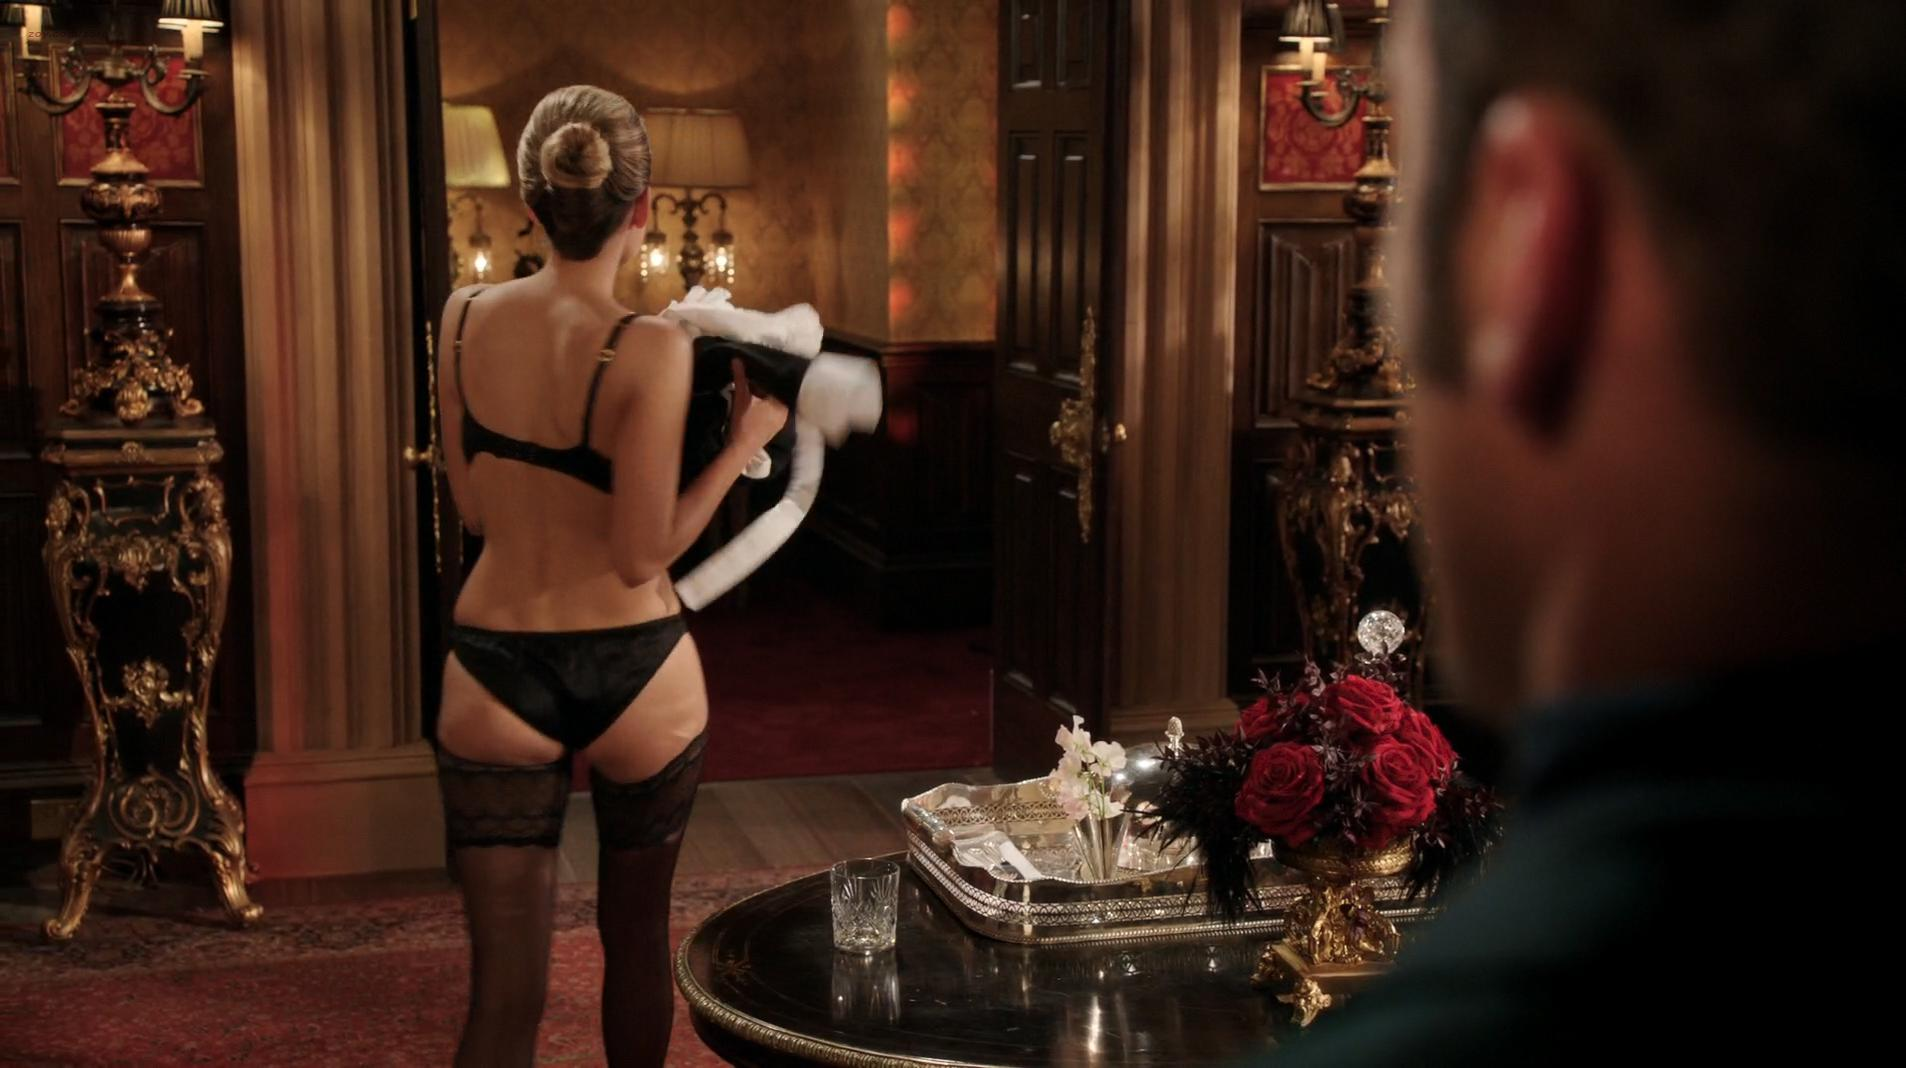 Keeley Hazell sexy - The Royals s02e04 (2015)